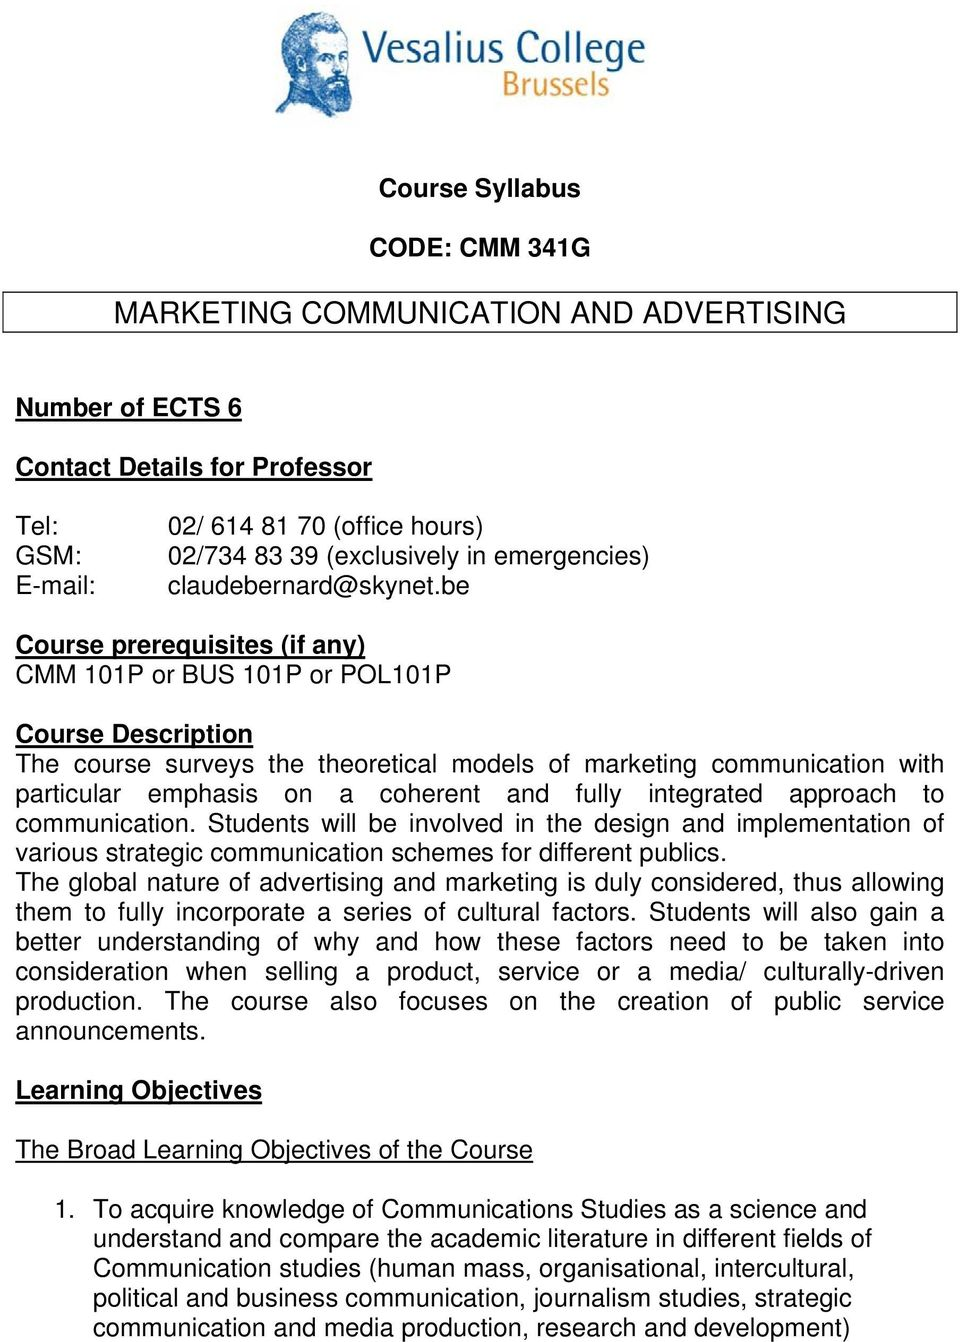 be Course prerequisites (if any) CMM 101P or BUS 101P or POL101P Course Description The course surveys the theoretical models of marketing communication with particular emphasis on a coherent and